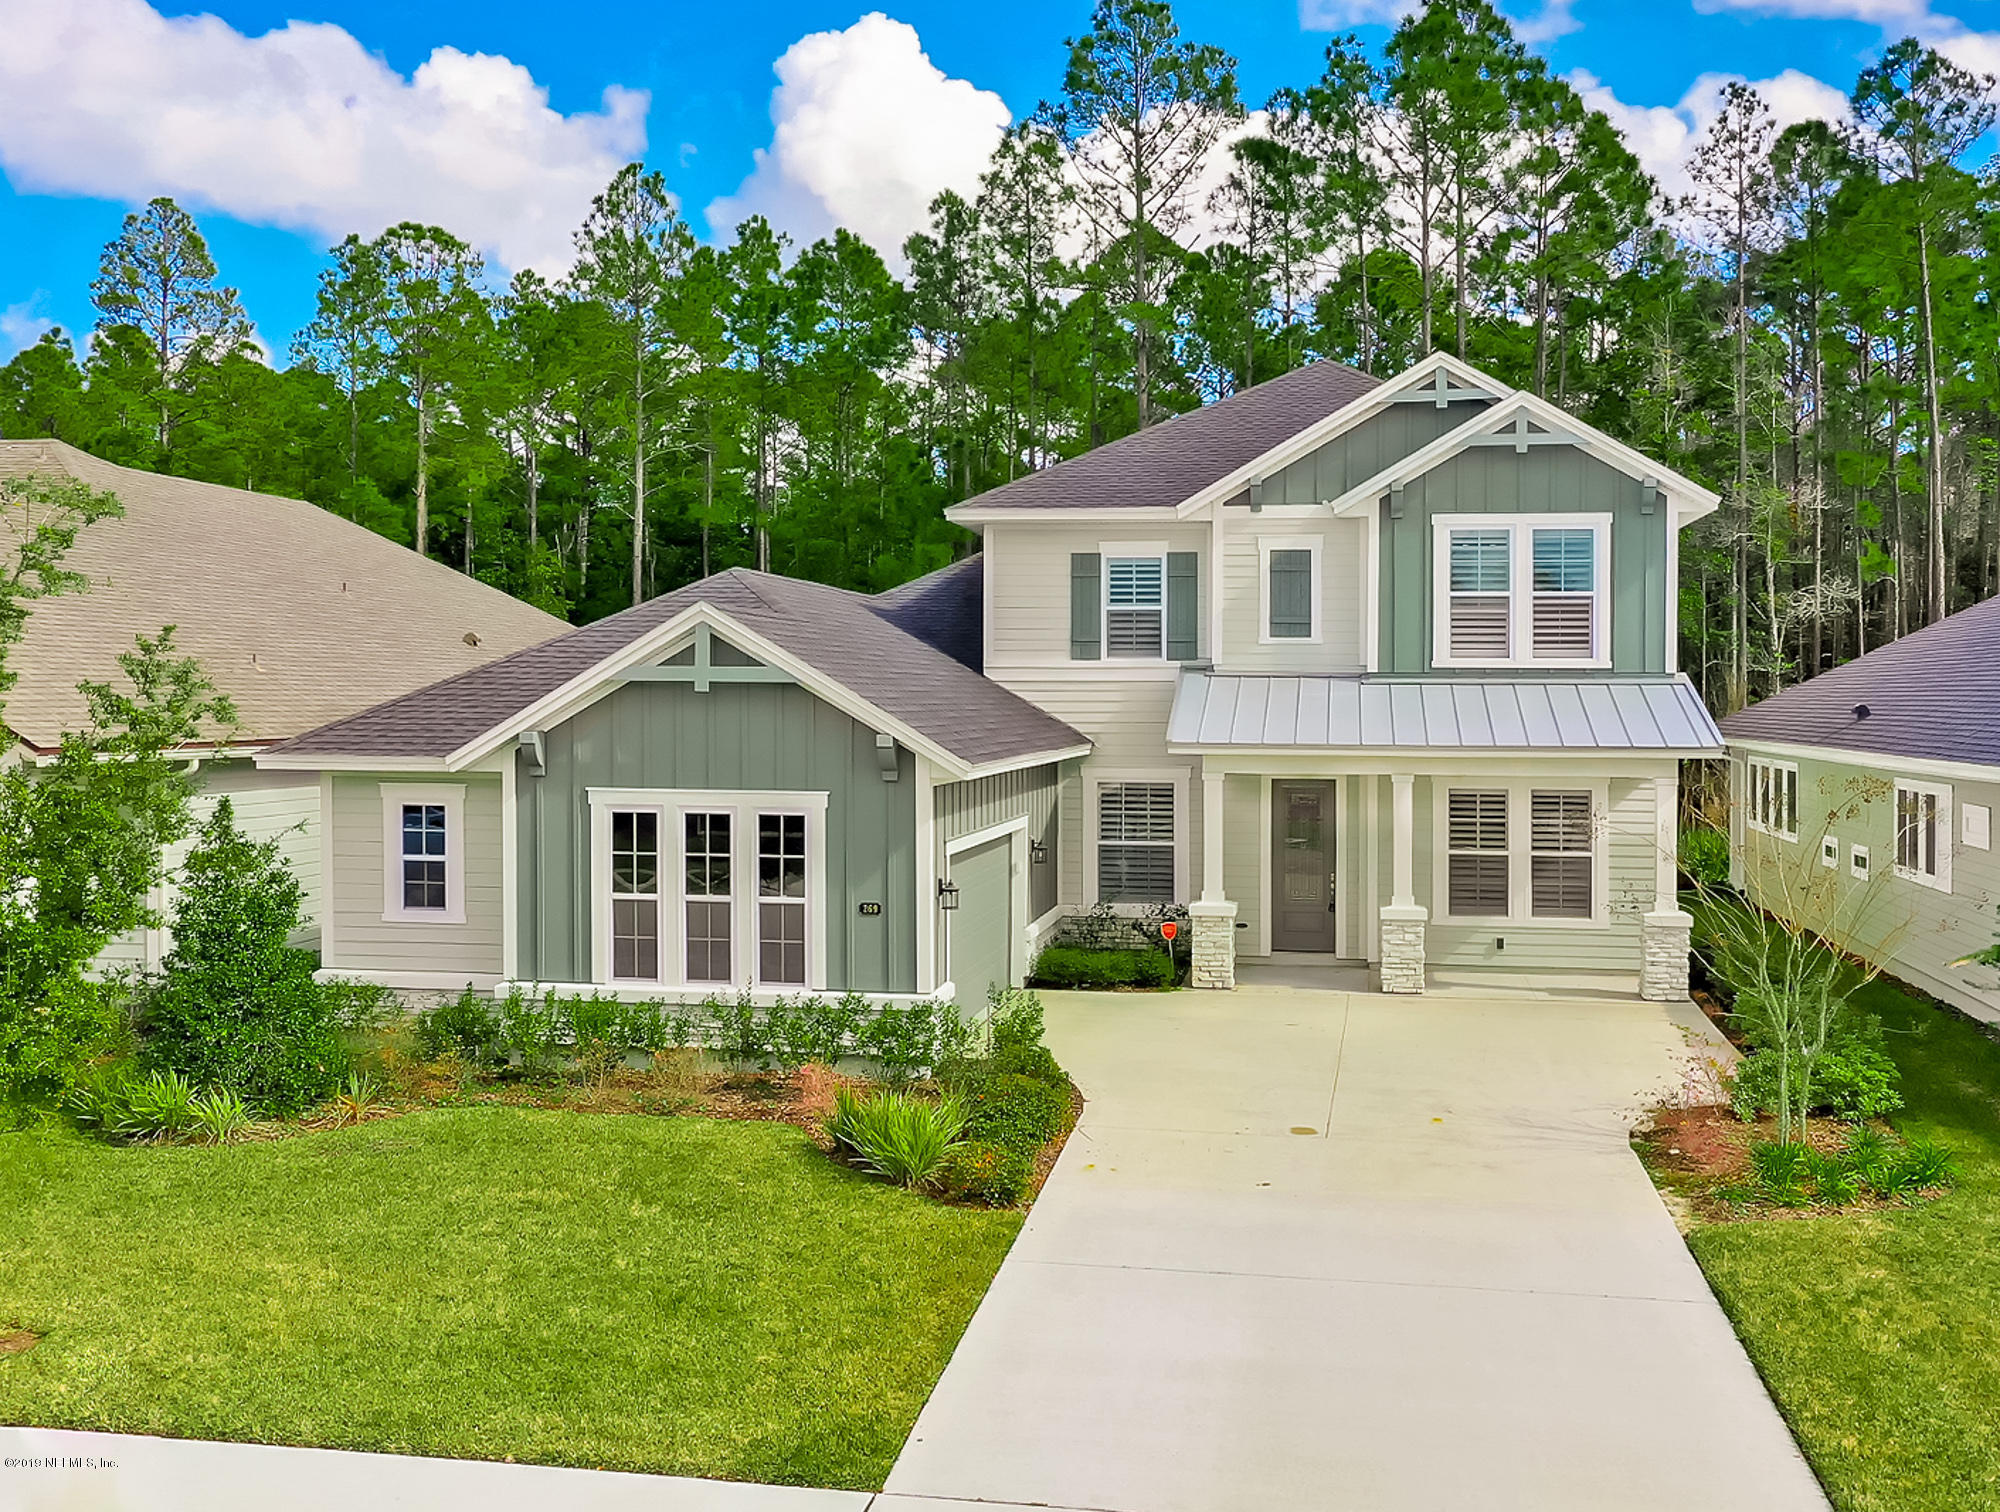 269 VALLEY GROVE, PONTE VEDRA, FLORIDA 32081, 5 Bedrooms Bedrooms, ,4 BathroomsBathrooms,Residential - single family,For sale,VALLEY GROVE,979387